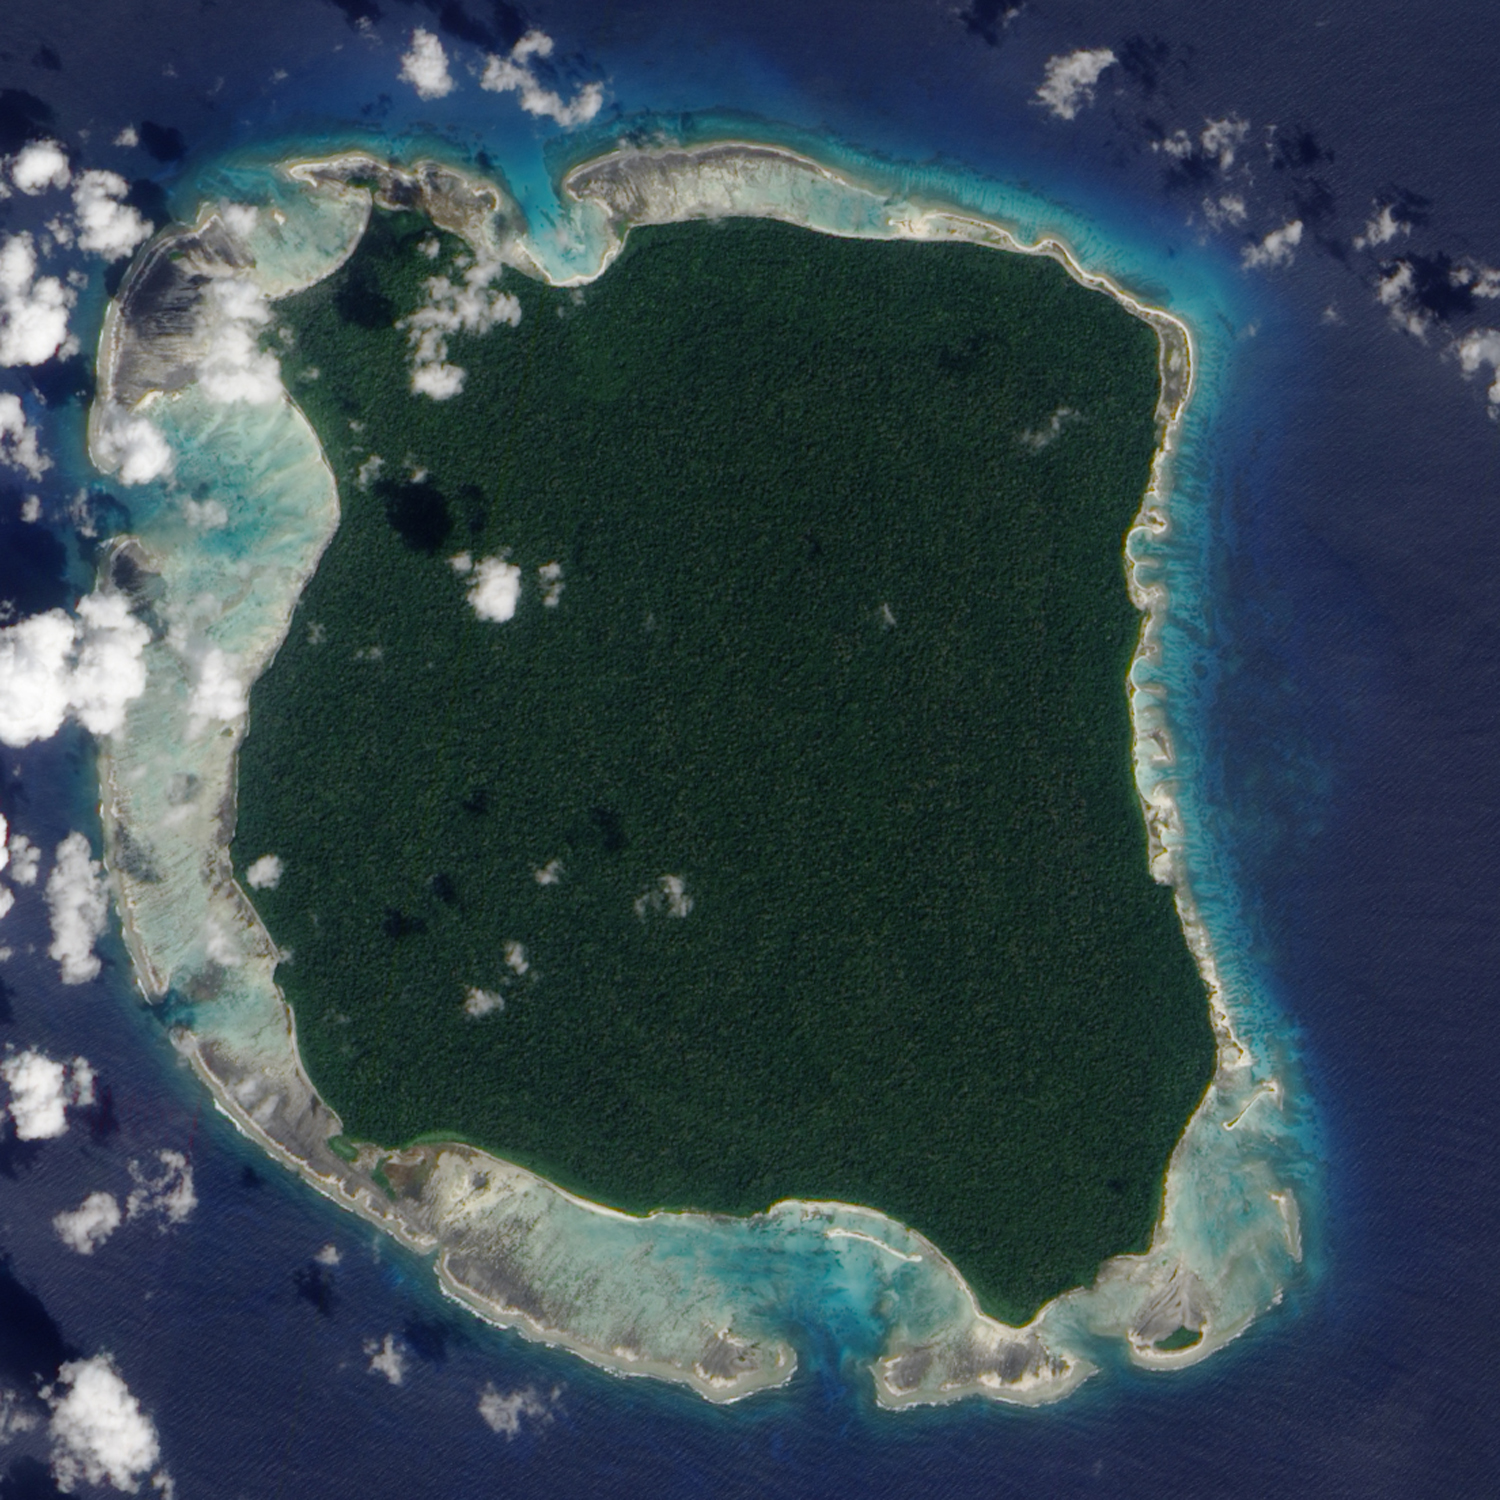 The Indian government monitors the Andaman Islands territories, including North Sentinel Island (pictured), home to the Sentinelese tribe — one of the last hunter-gatherer tribes that has little to no contact with modern civilization.